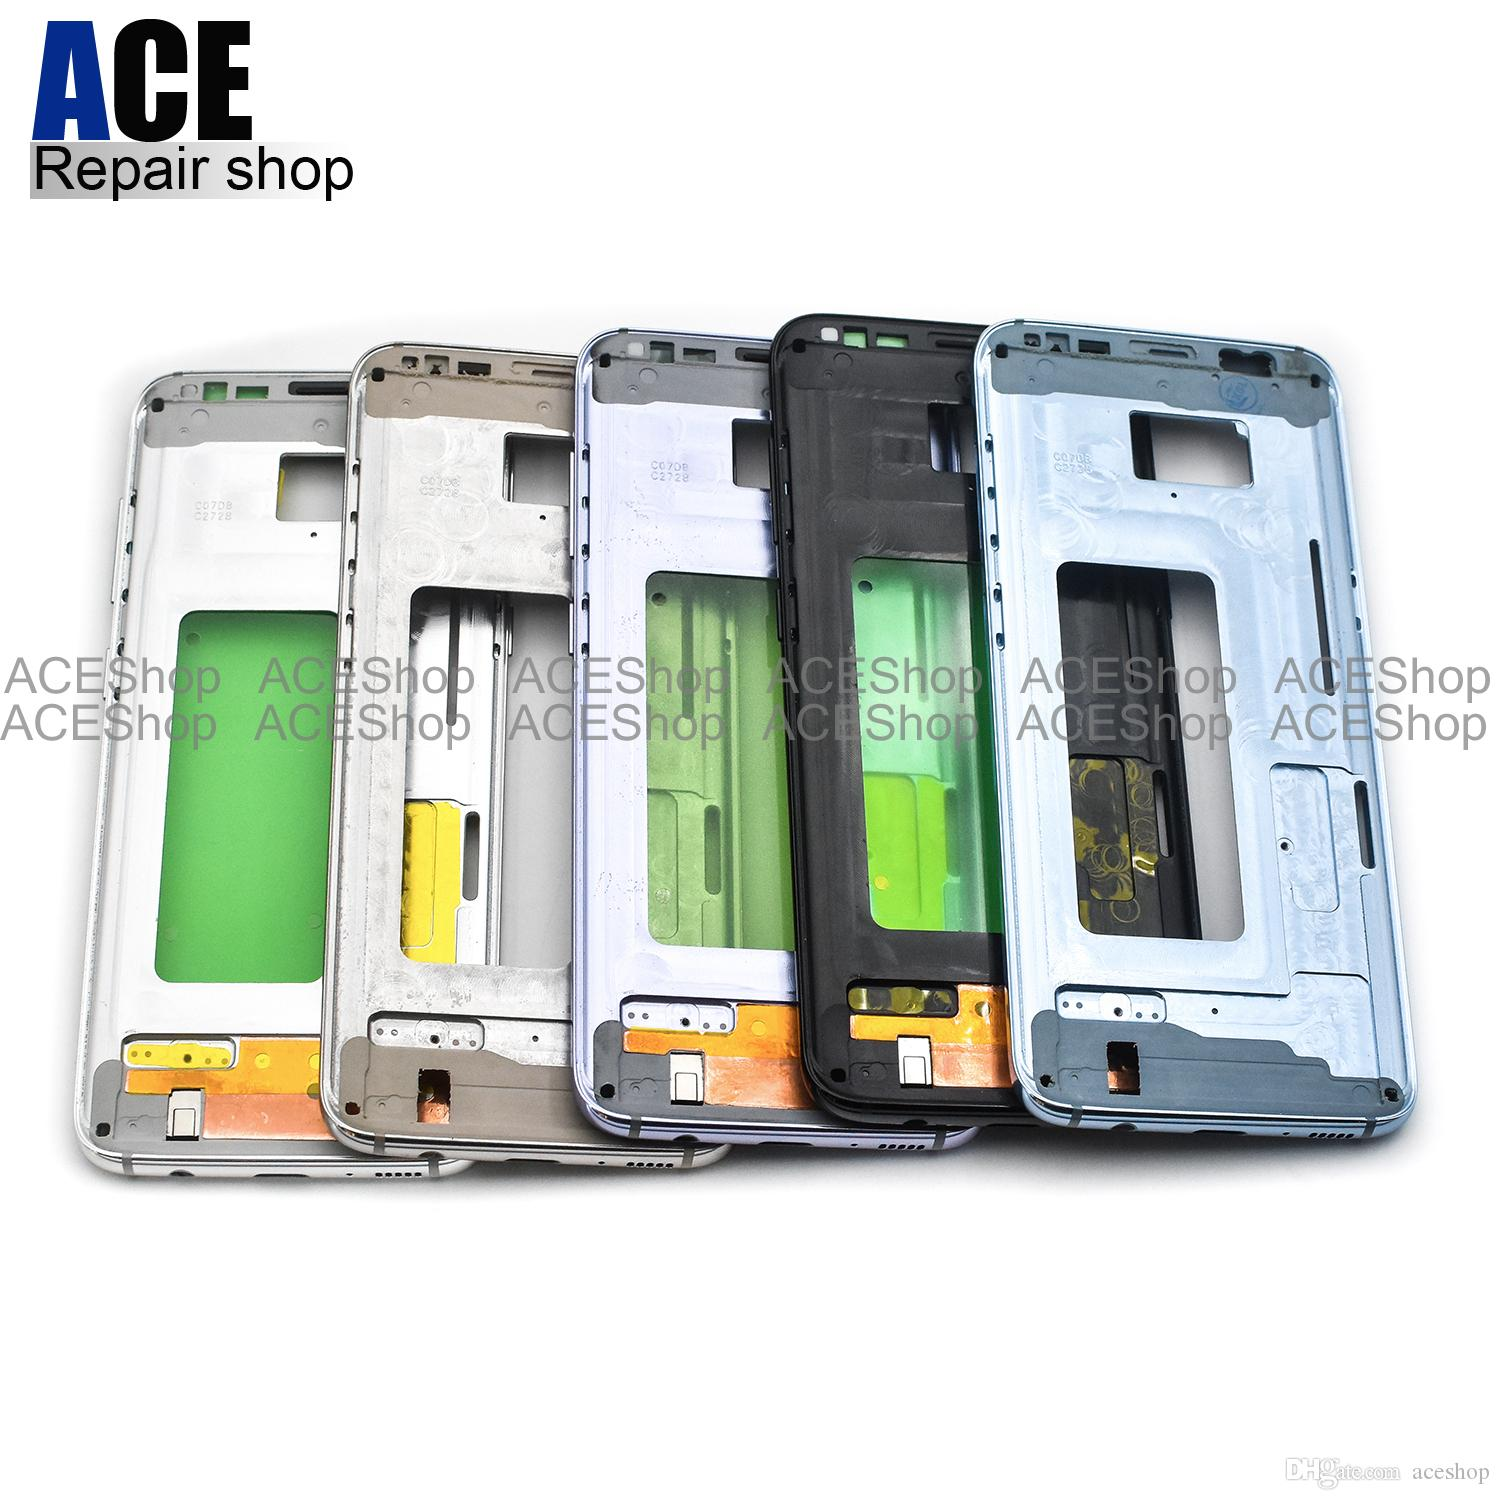 2018 Ace Oem Metal Middle Bezel Frame Case For Samsung Galaxy S8 G950 G950p G950f For S8 Plus G955 G955p G955f Housing With Side Buttons From Aceshop